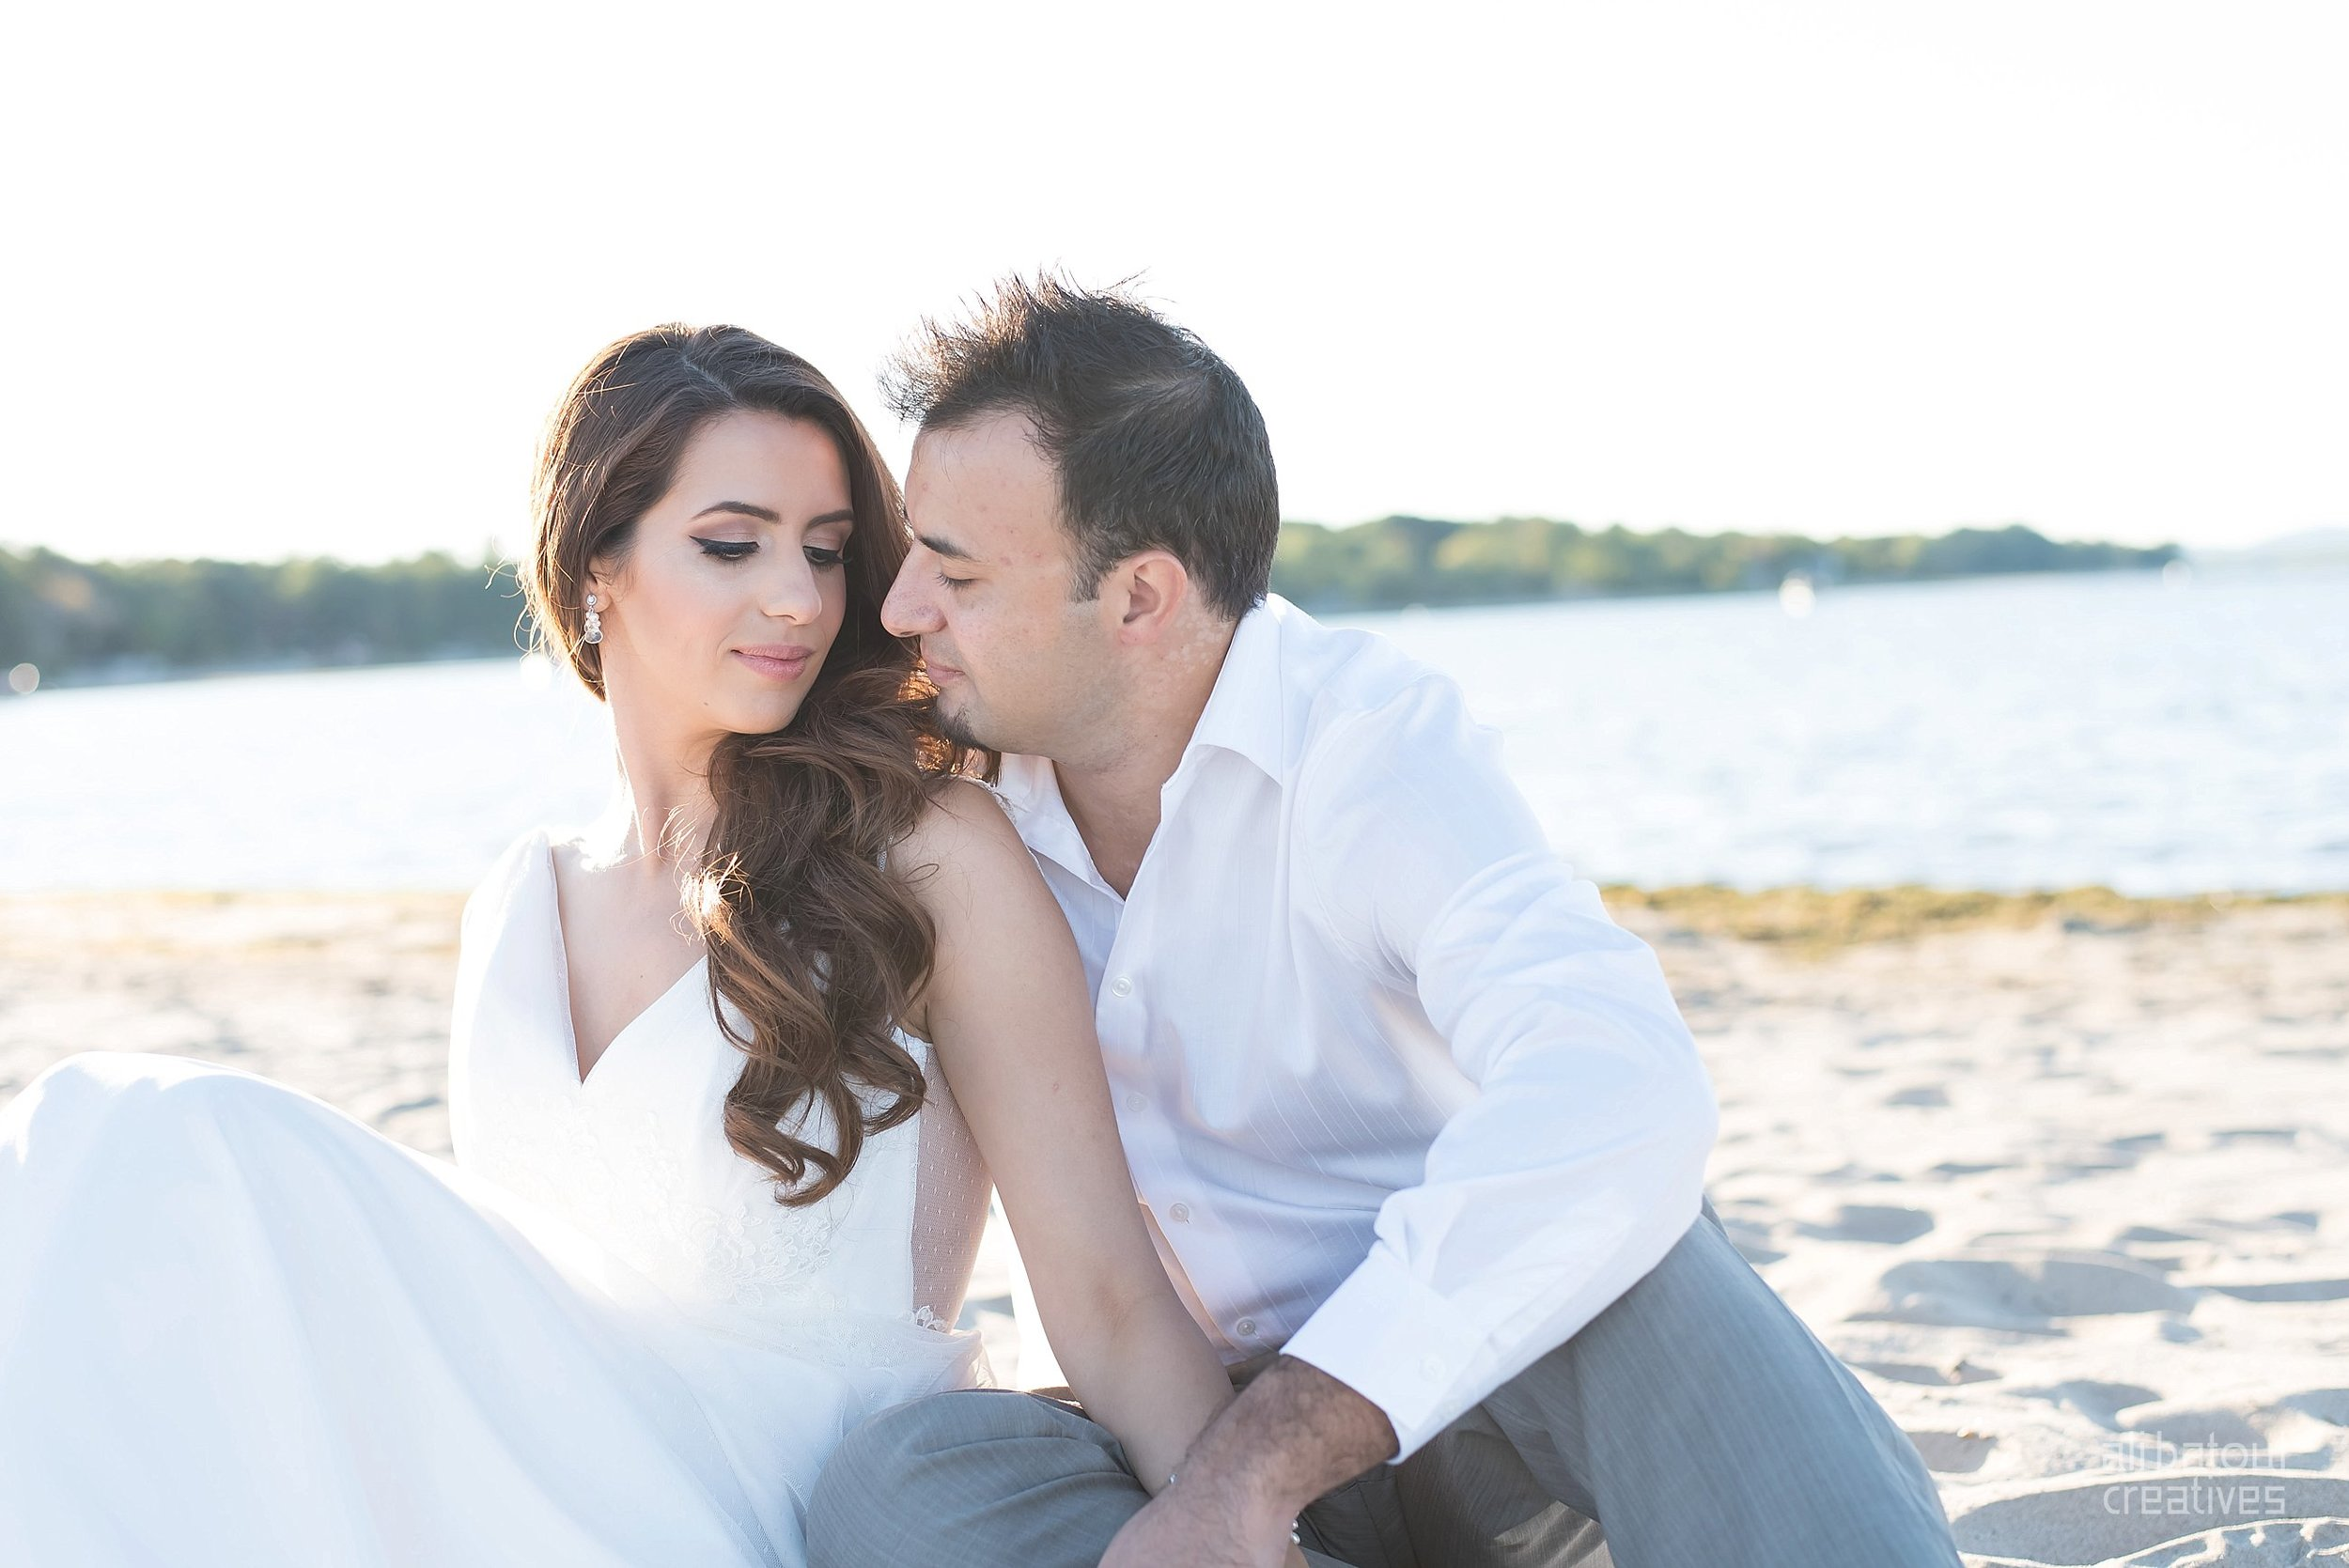 Alaa + Jad - Ottawa Beach Bridal Shoot (Ali Batoul Creatives)-88_Stomped.jpg